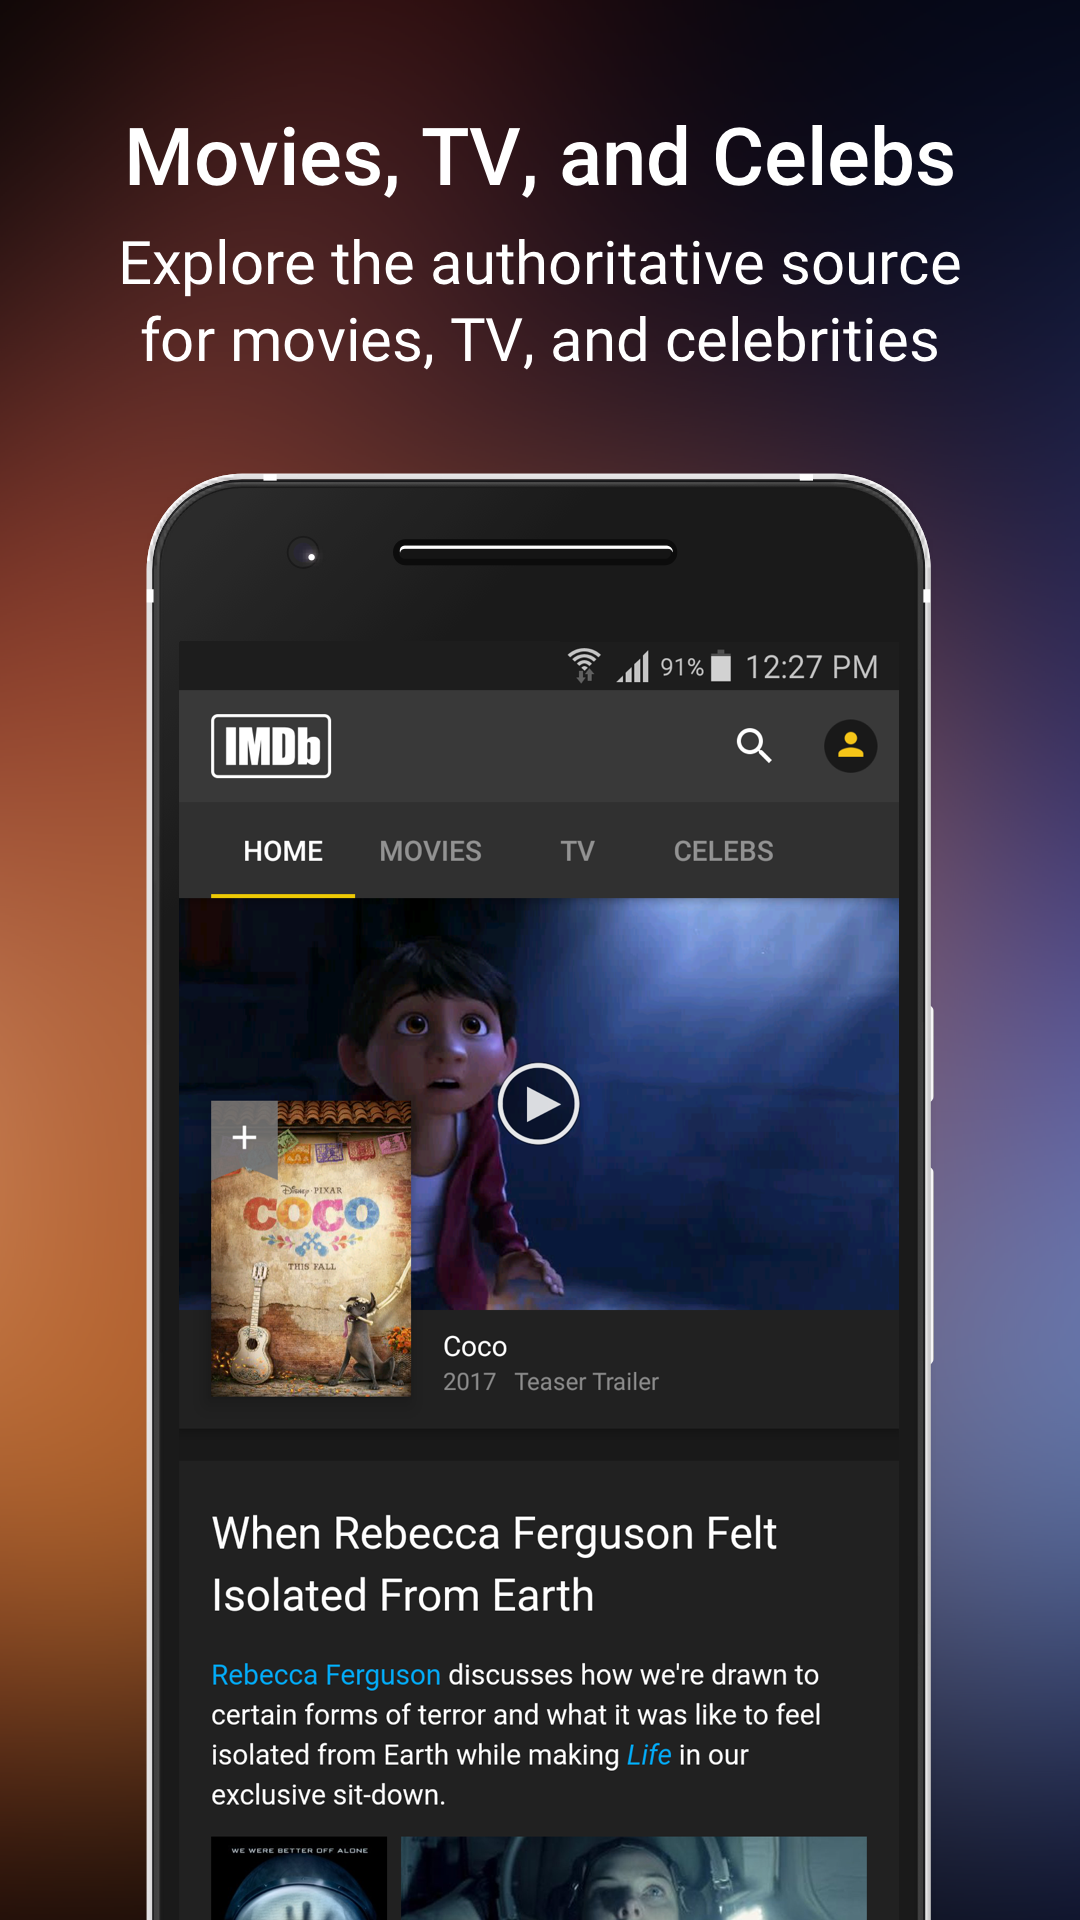 imdb android tv mobile movies amazon apps app moboplay tubi apk google device play dp phone netflix appstore na tablet